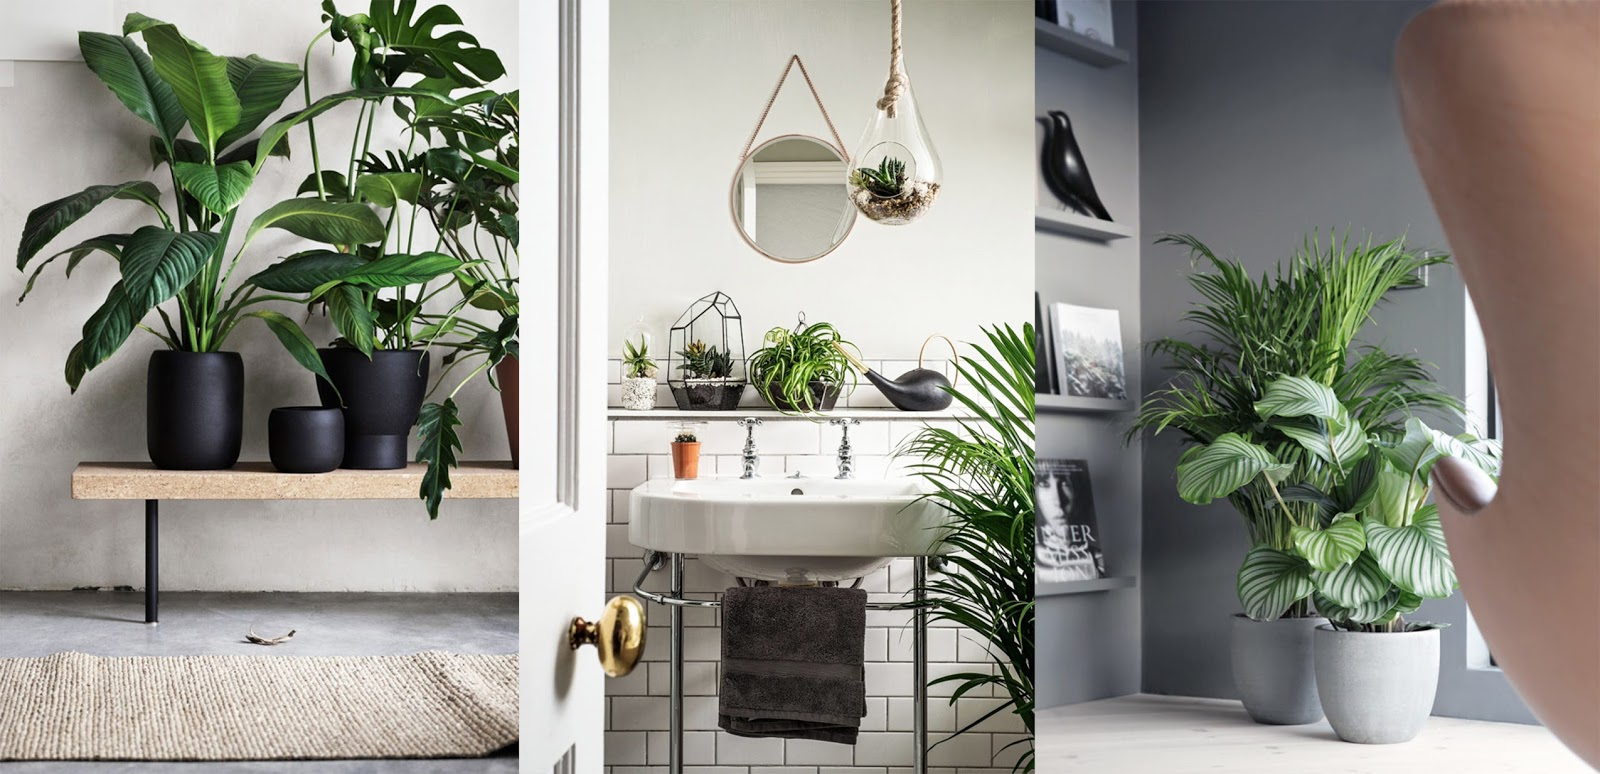 Come creare un 39 oasi verde a casa 7 idee per decorare l for Idee per casa